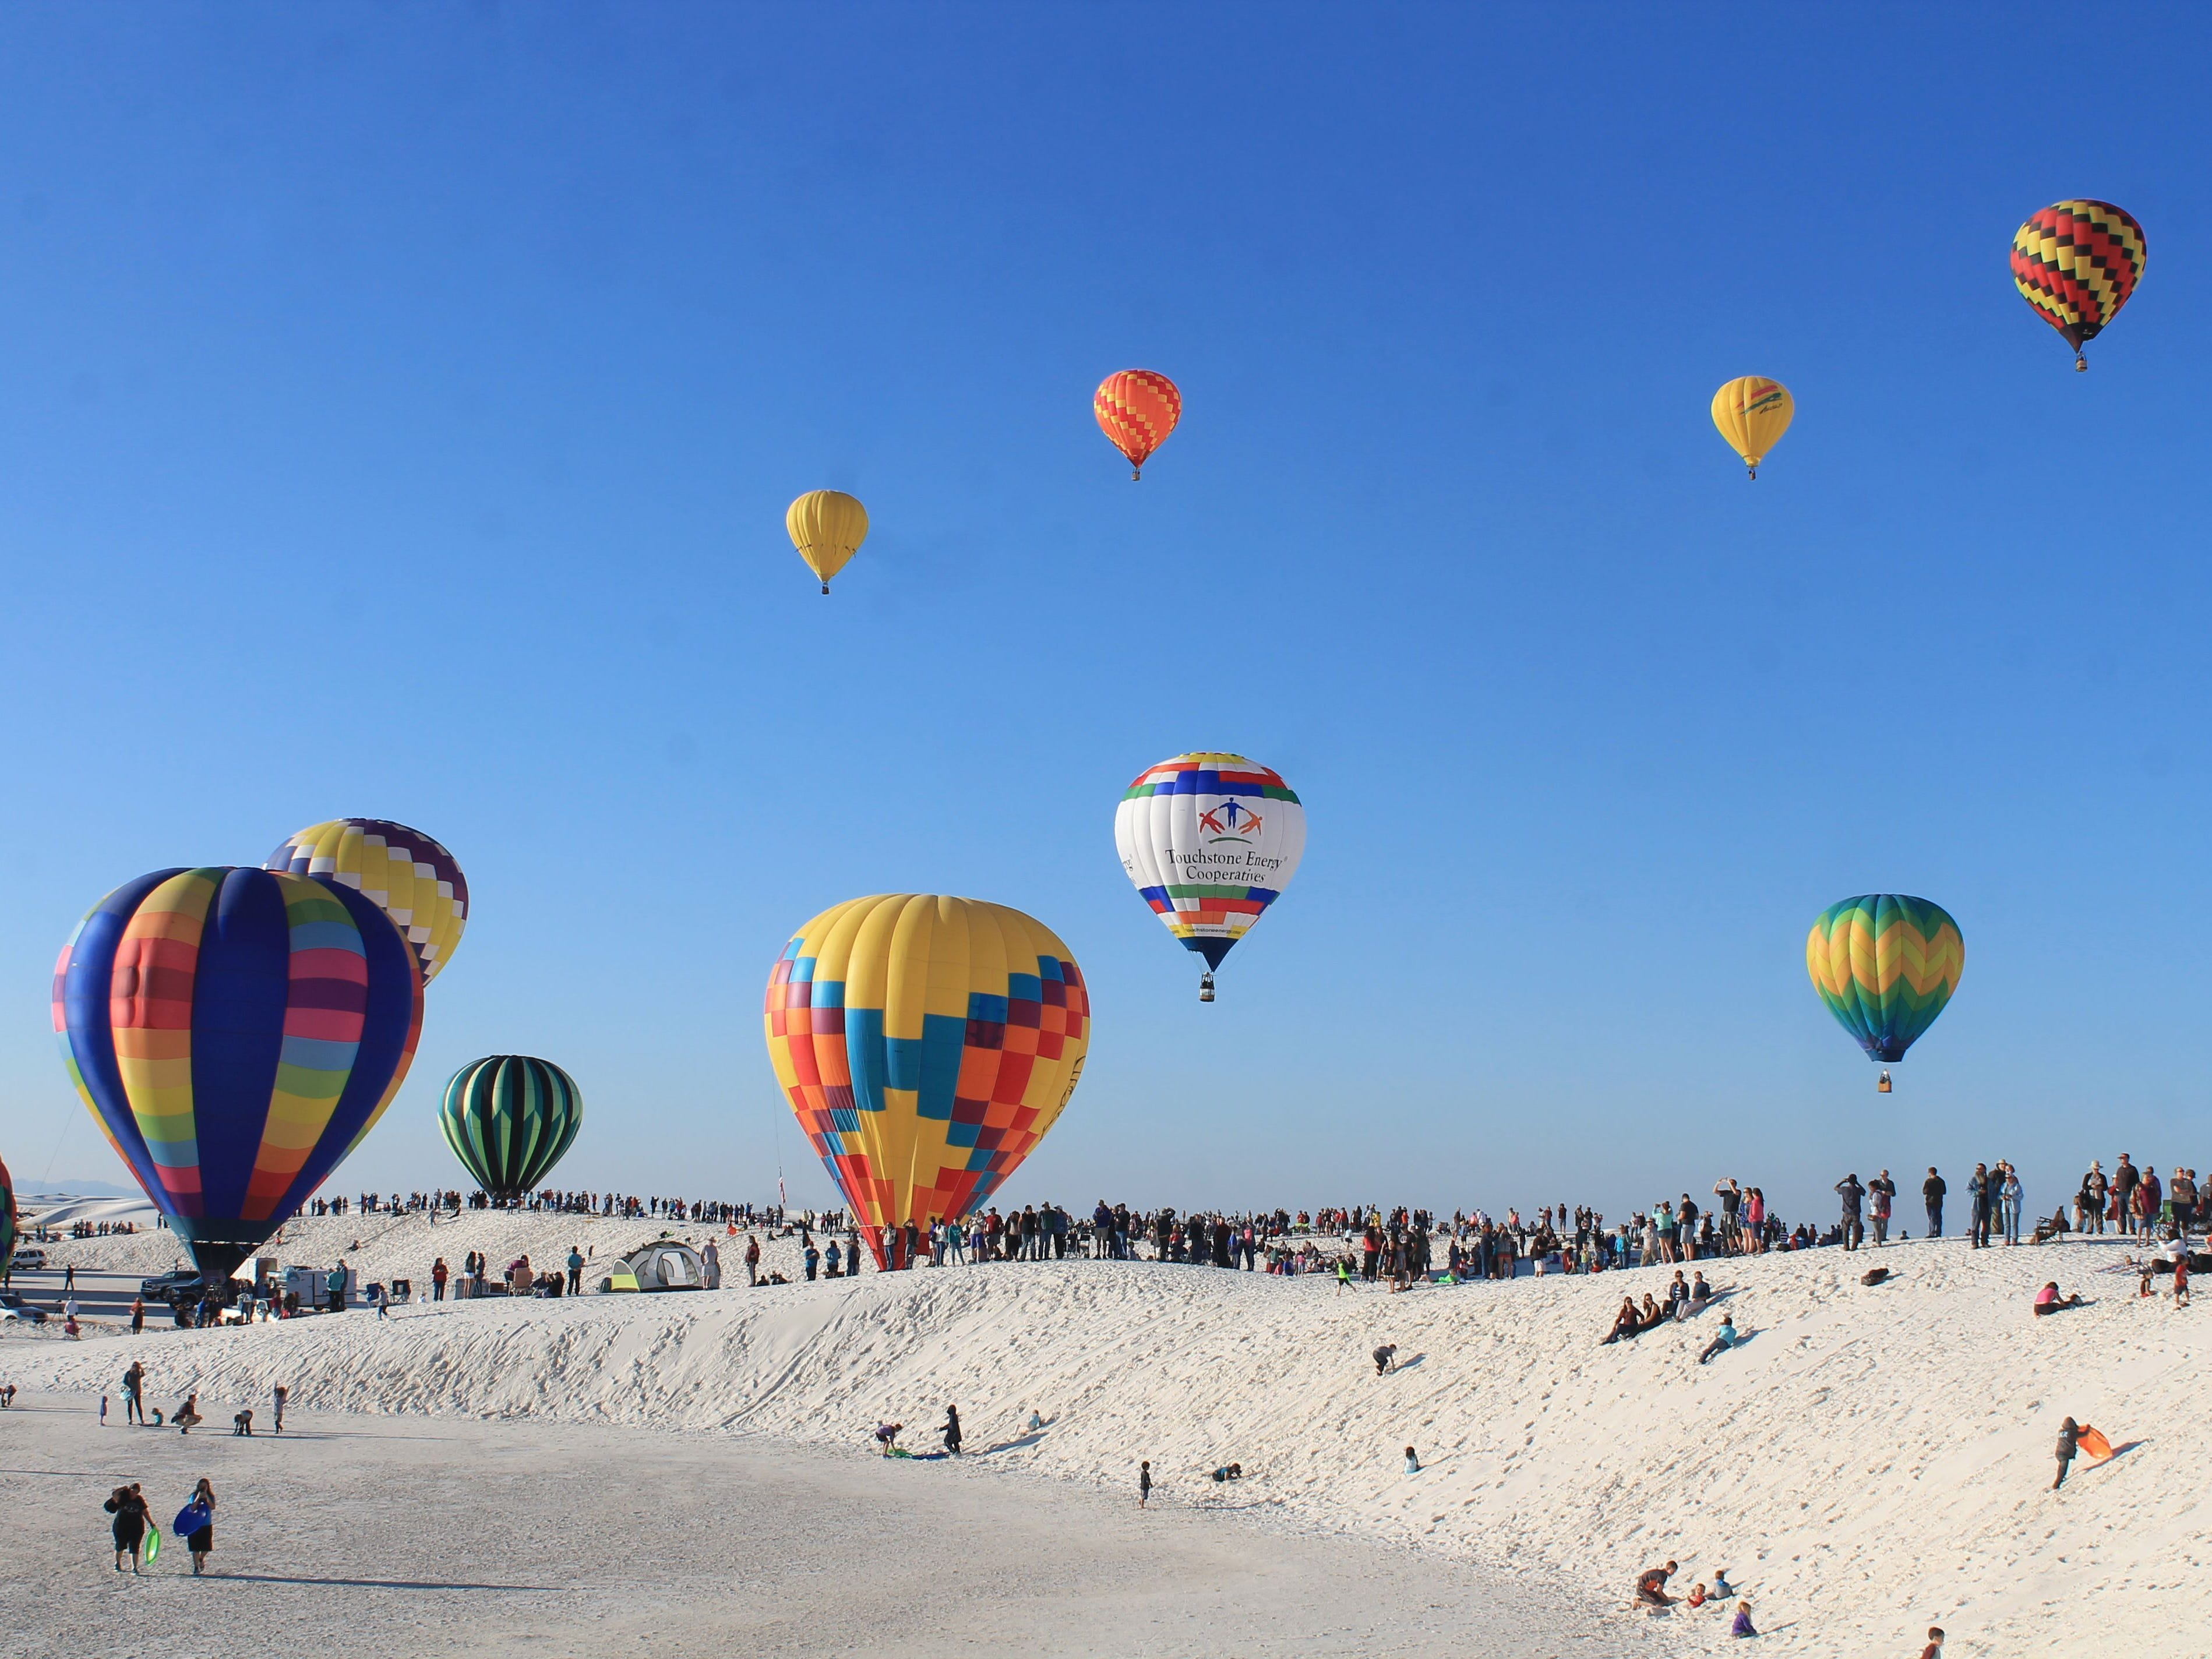 Hot air balloons launch at White Sands National Monument in 2016. This year's White Sands Balloon Invitational takes place Saturday, Sept. 15.